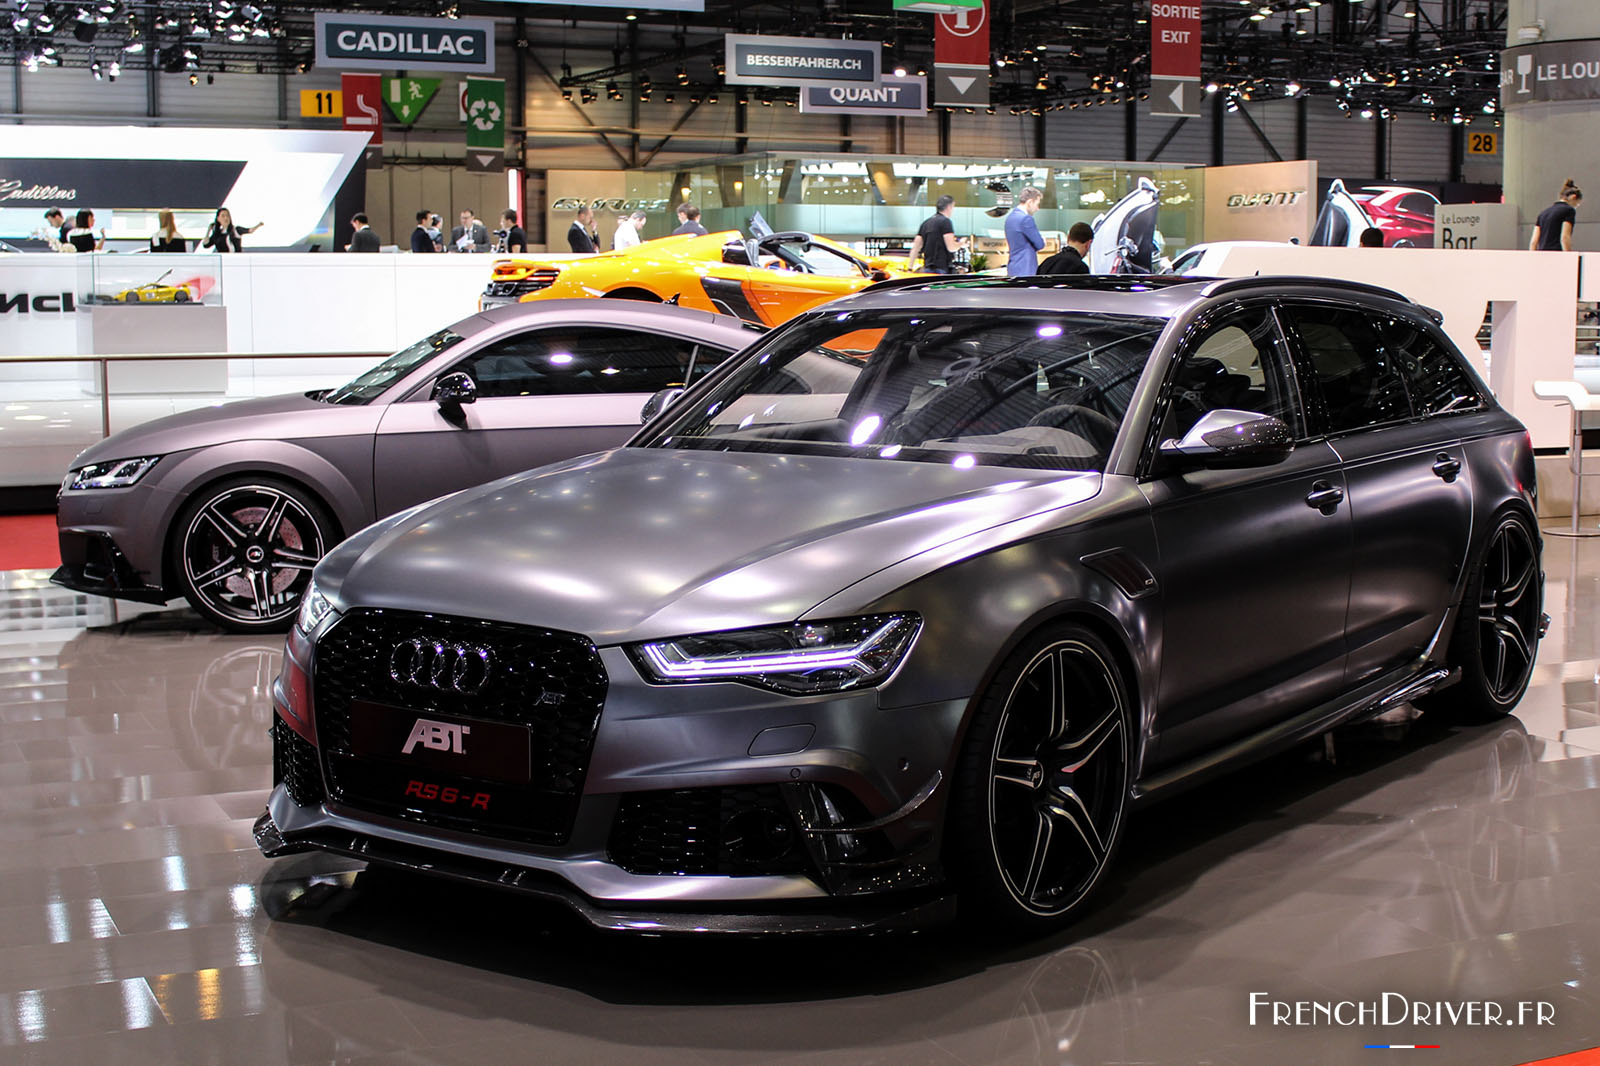 billet salon auto geneve 2015 maison design